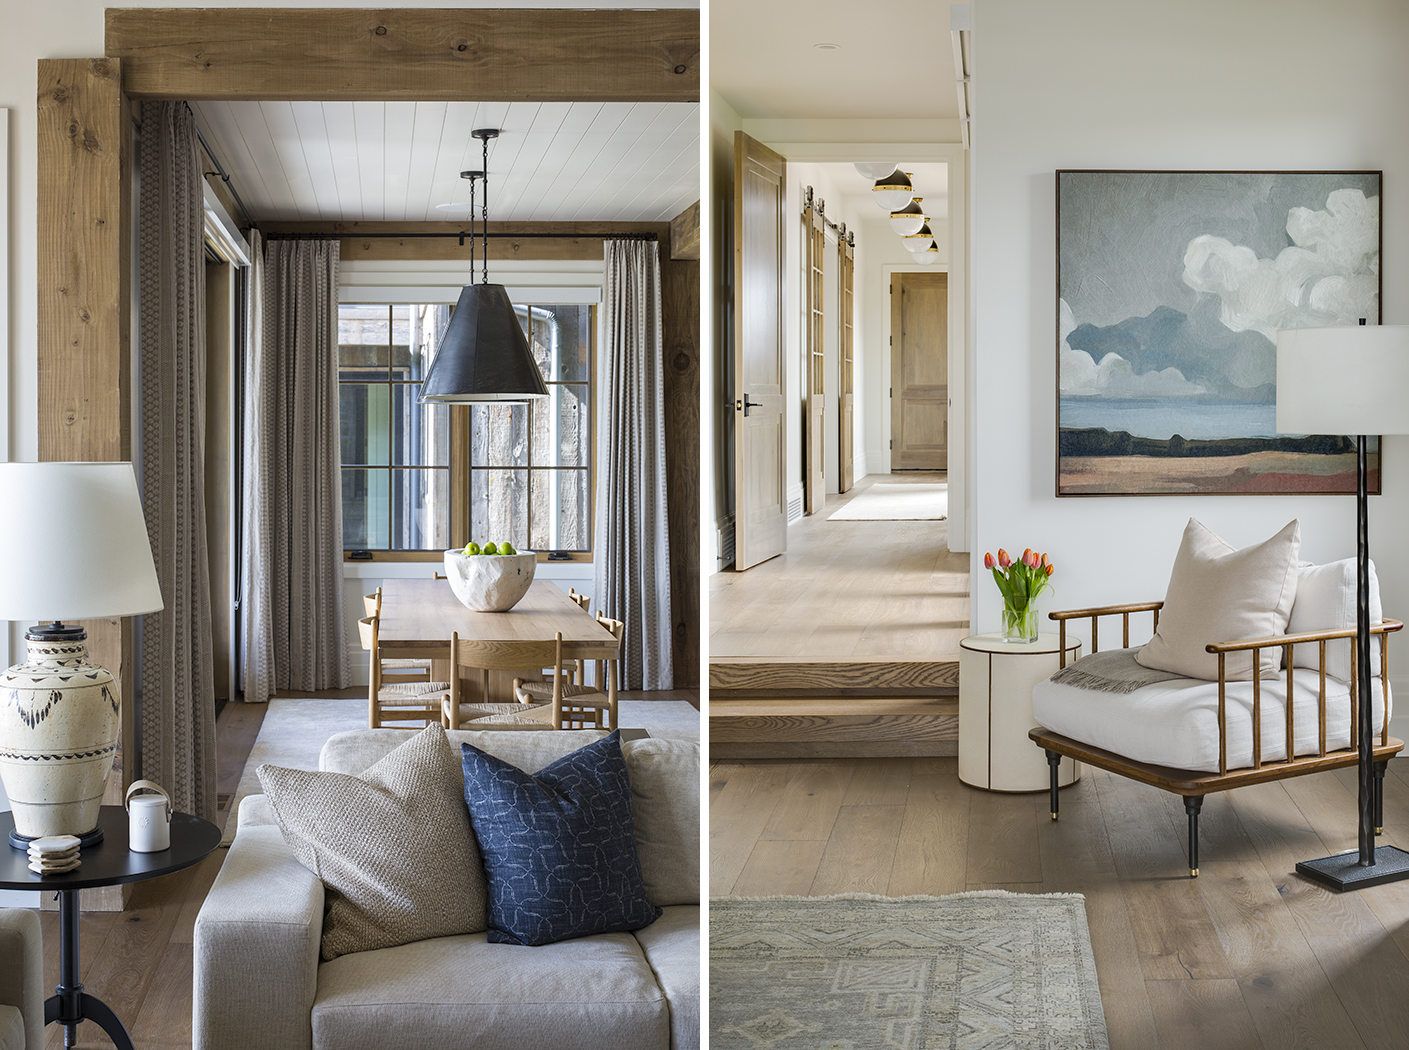 Two interior photographs showing design elements from the dining area and master bedrooms of a contemporary, mountain rustic residence in Park City, UT.